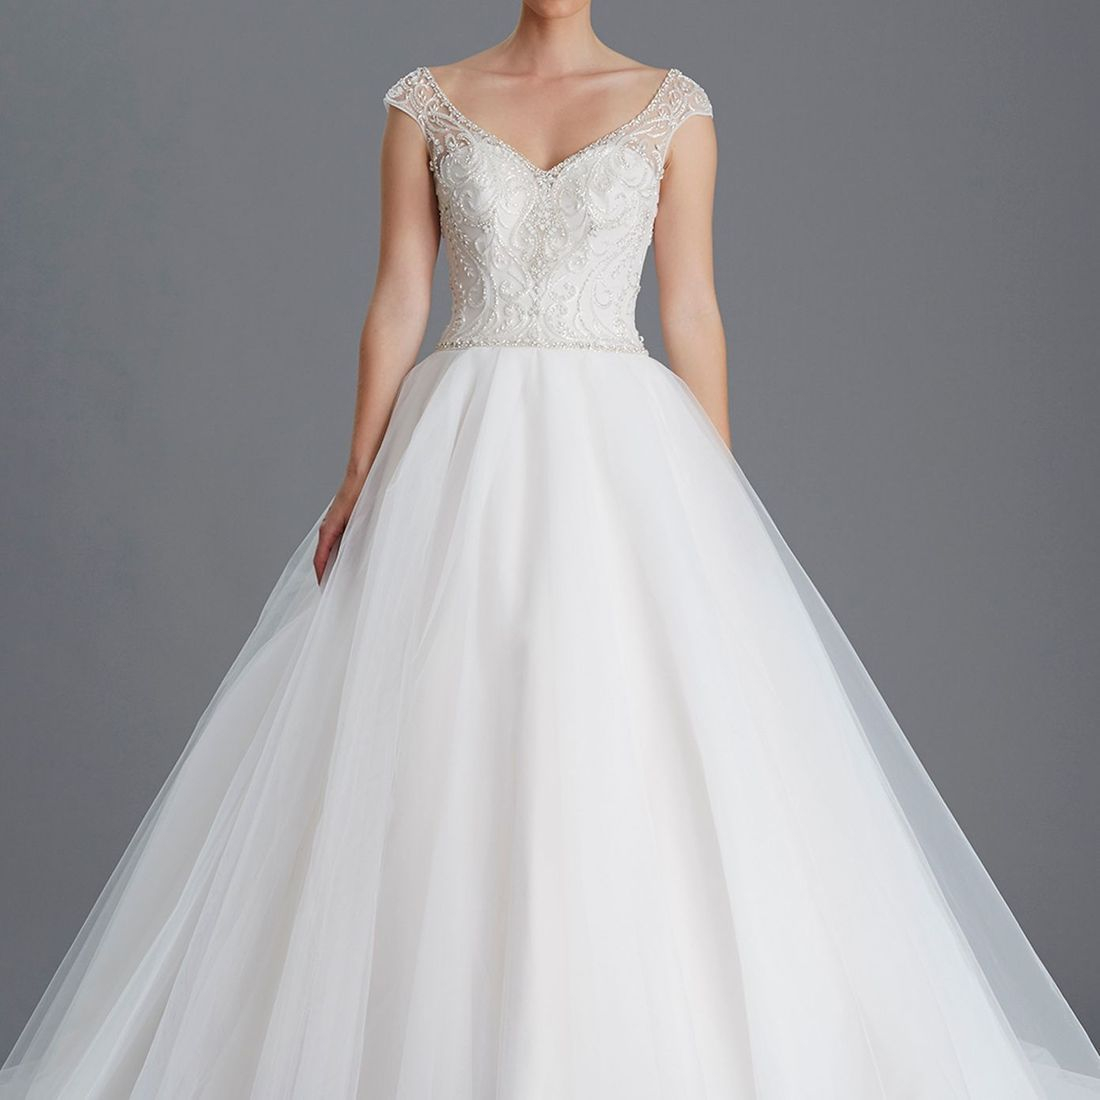 sweetheart crystal bodice, full skirt, straps